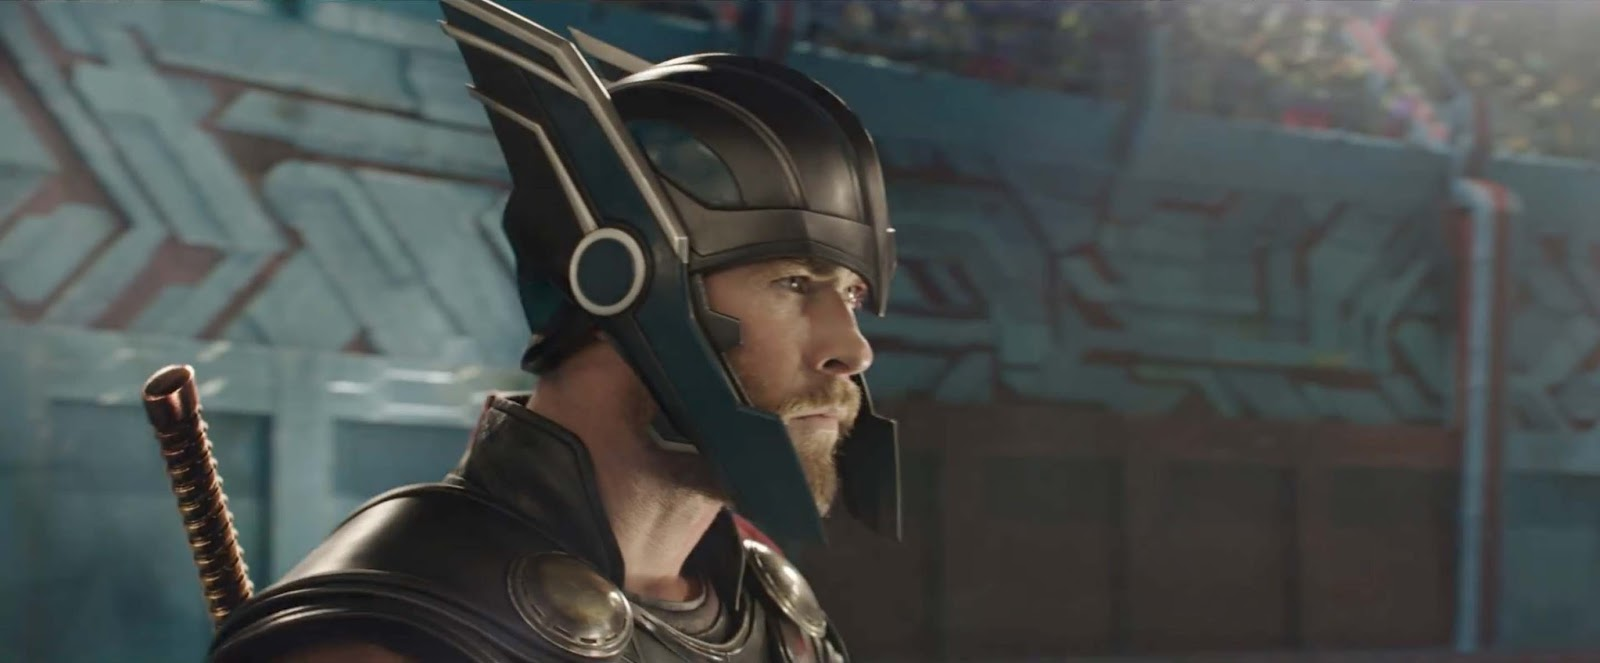 thor christian singles Characters like thor, hercules and others never seem to catch much flak for claiming to be pagan gods and such, but christian based supers are either unheard of or portrayed as over zealous wack jobs.